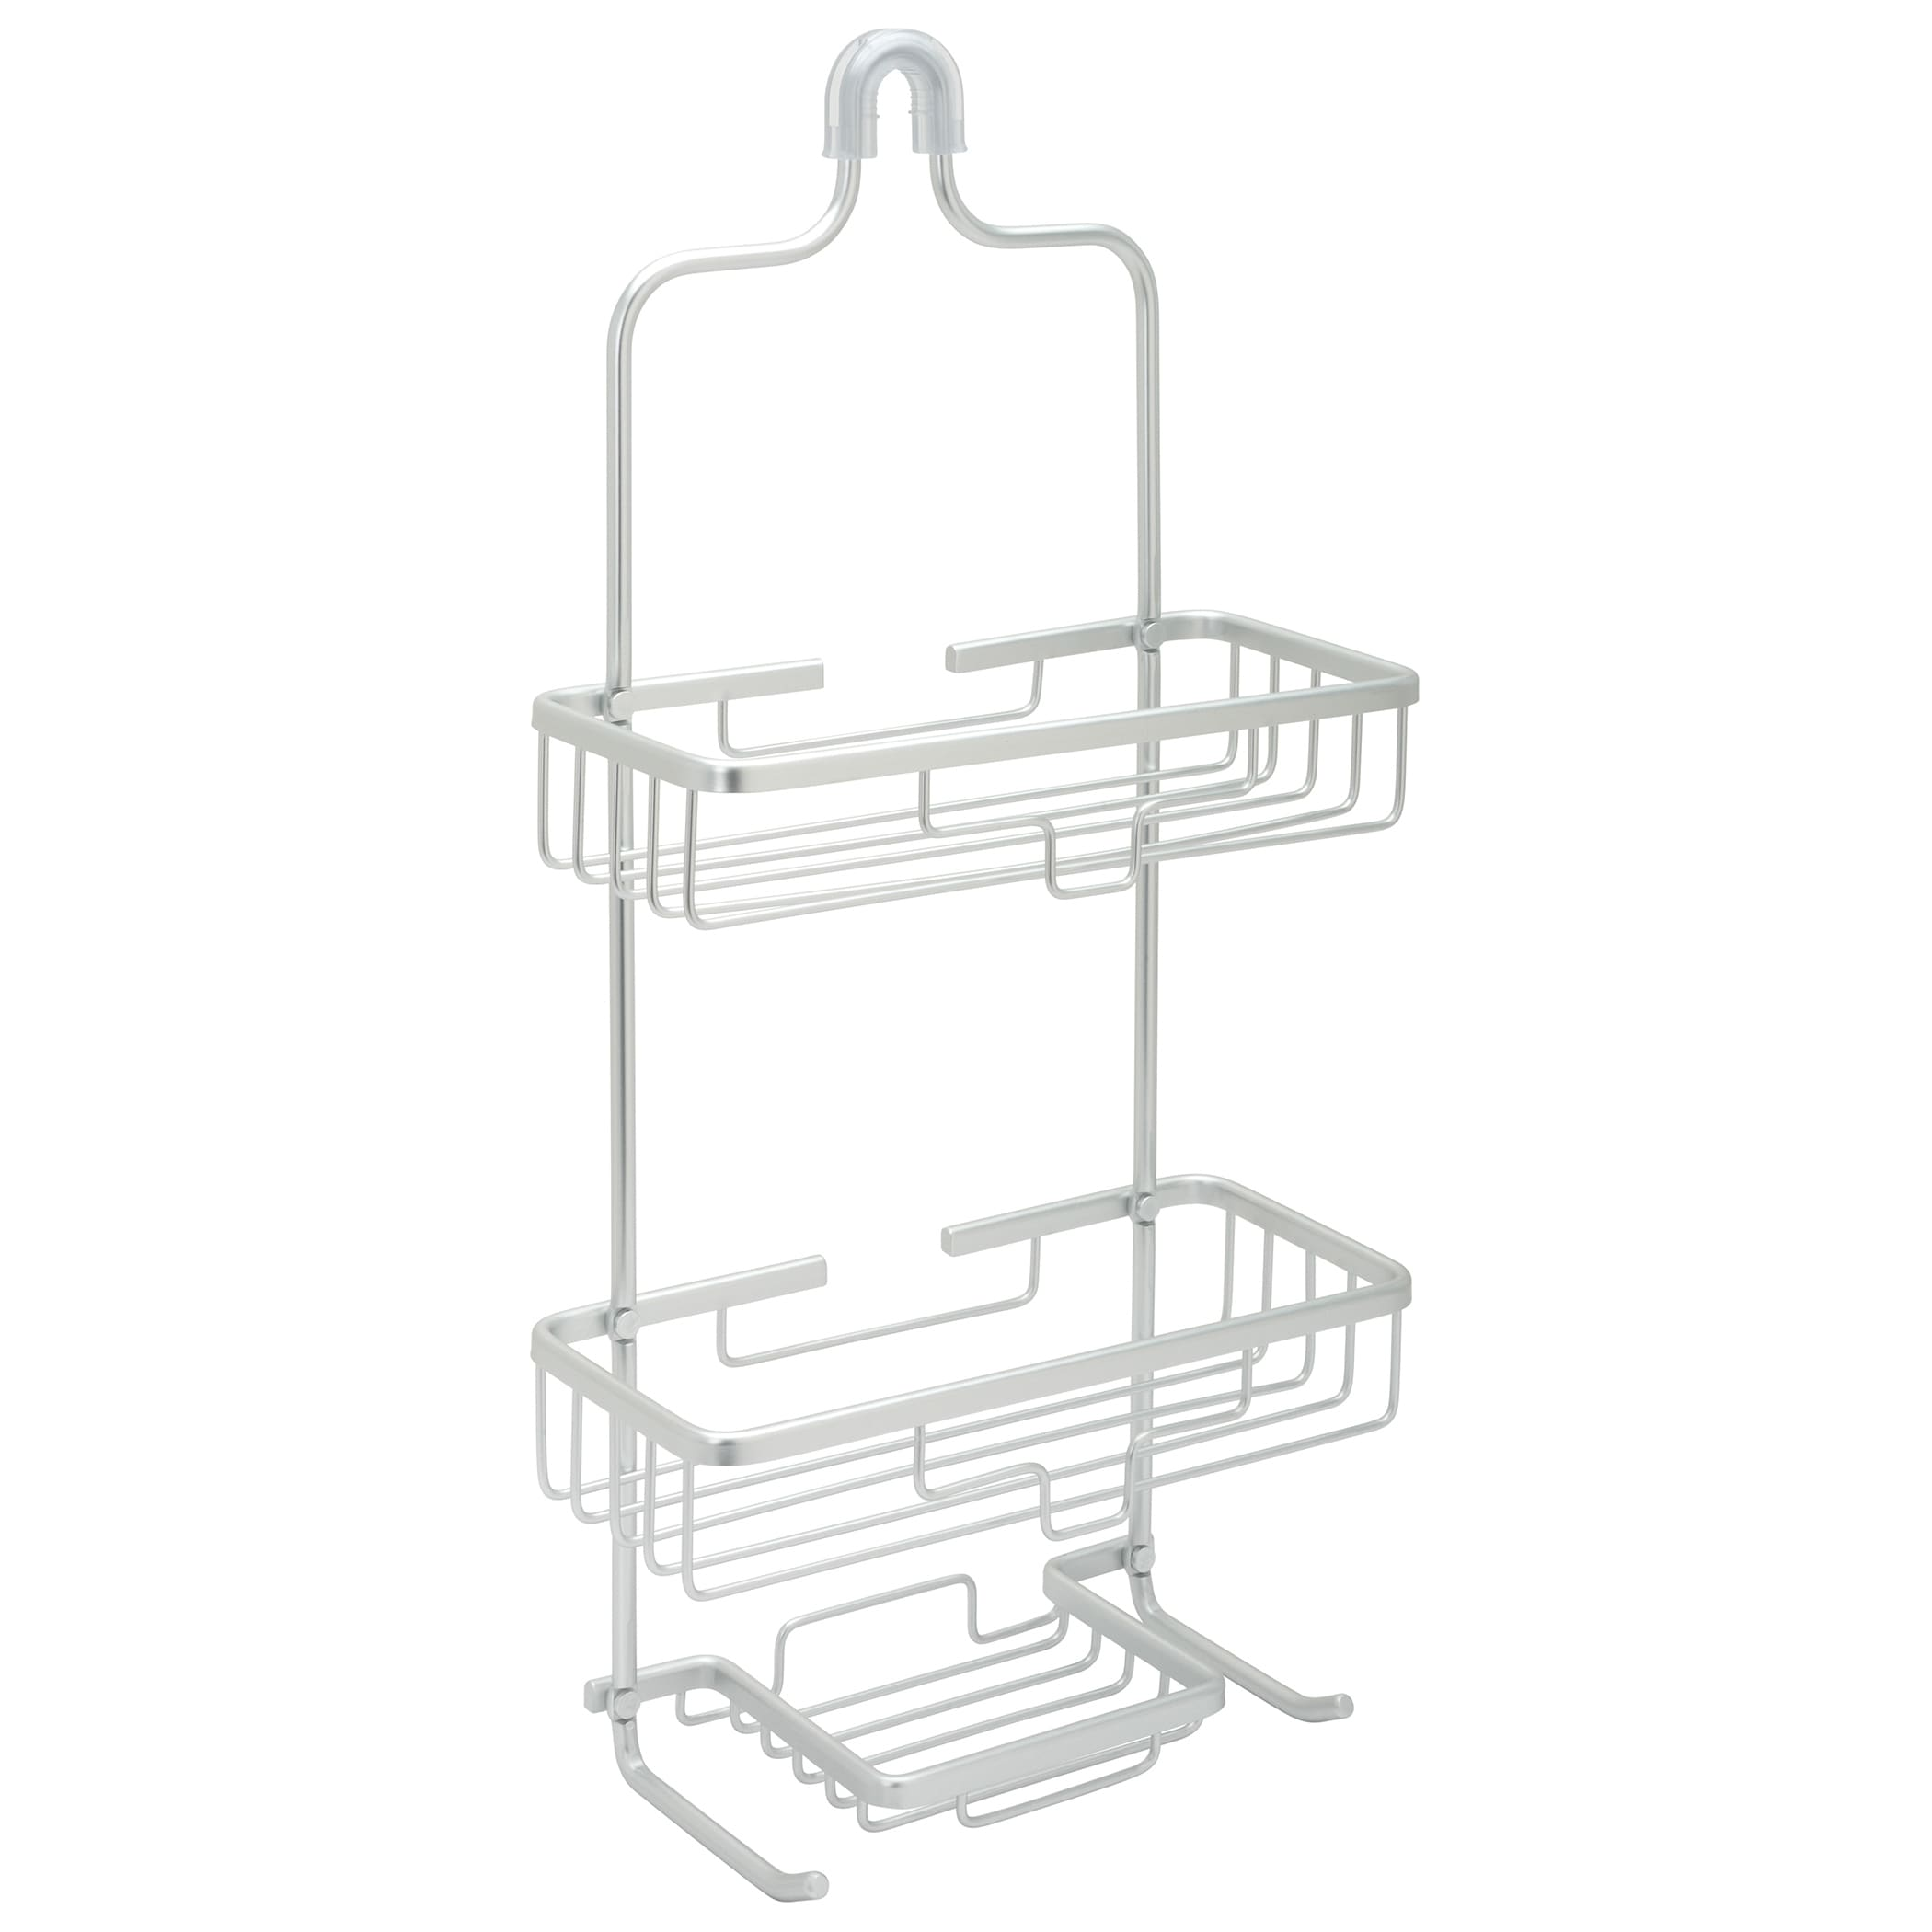 Shop NeverRust Aluminum Frame Large Shower Caddy - Free Shipping ...